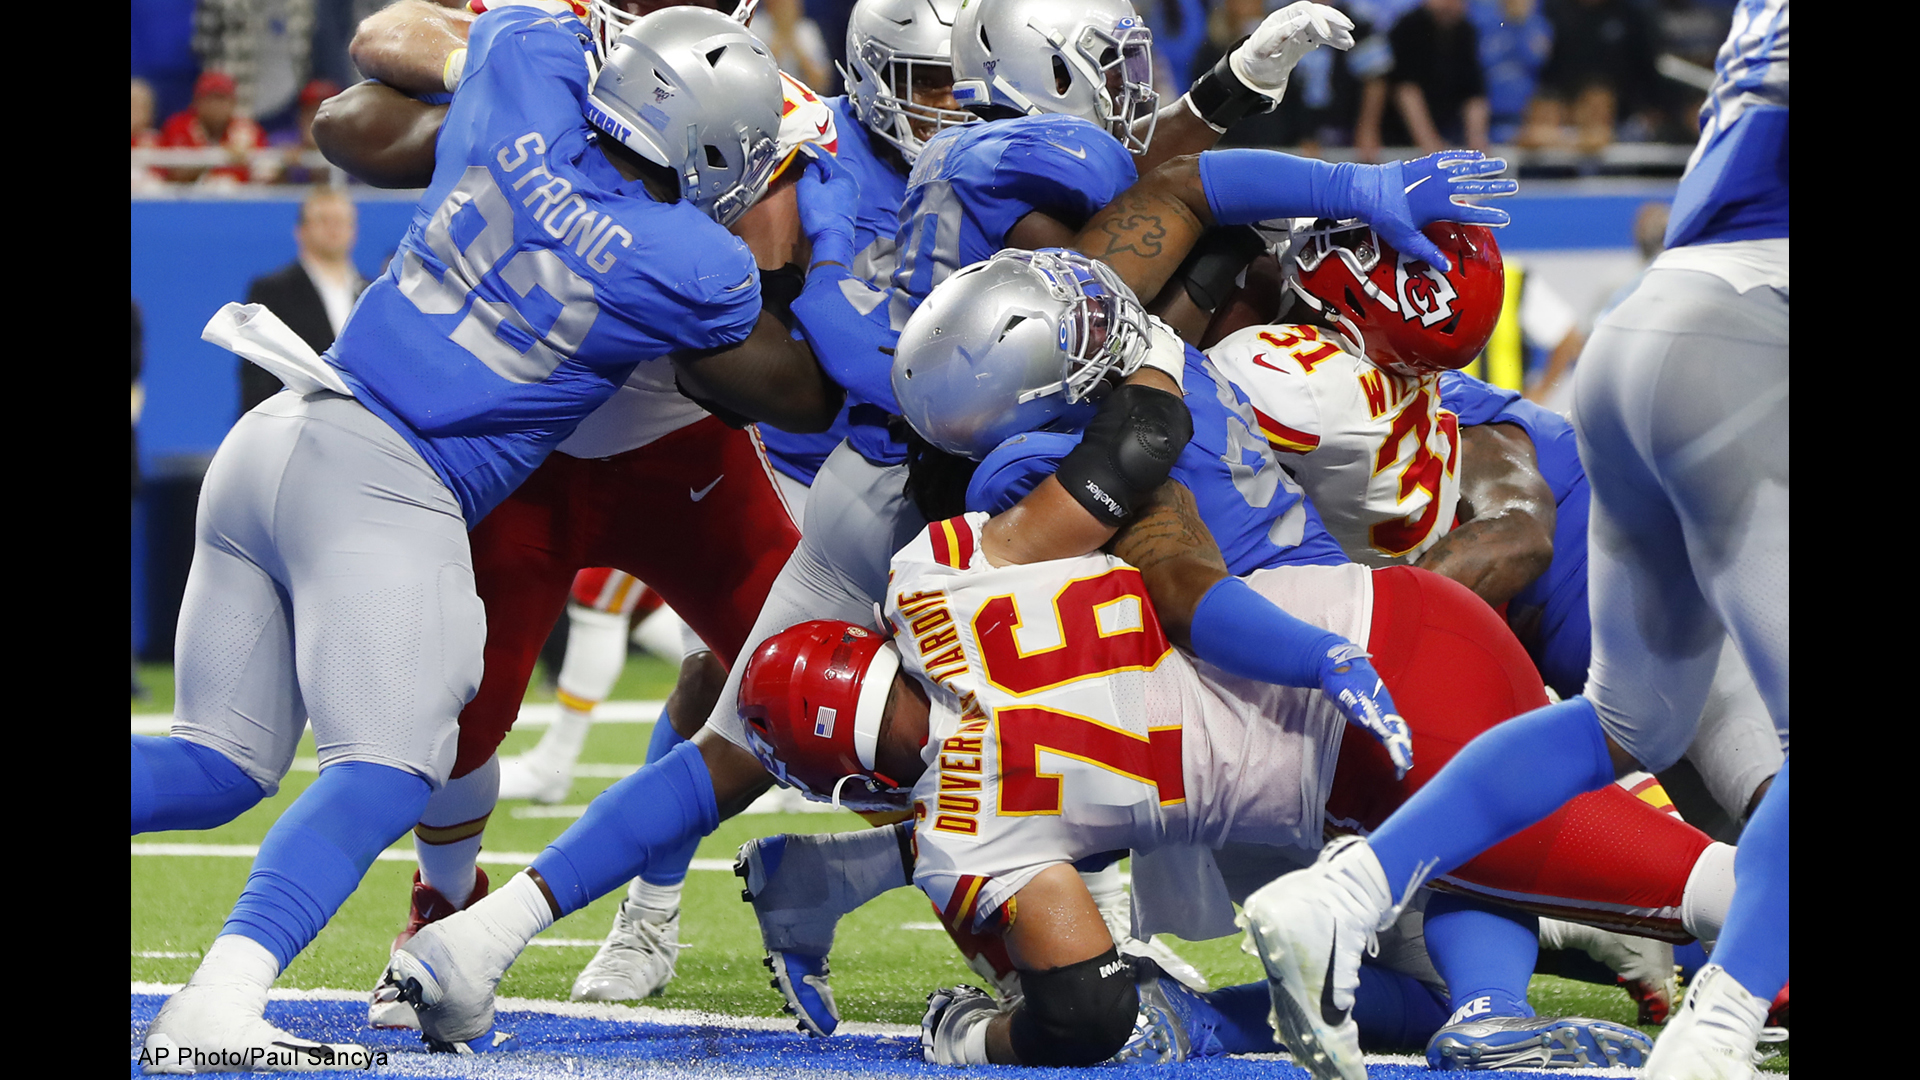 Chiefs Score Late Stay Undefeated With Win Over Lions